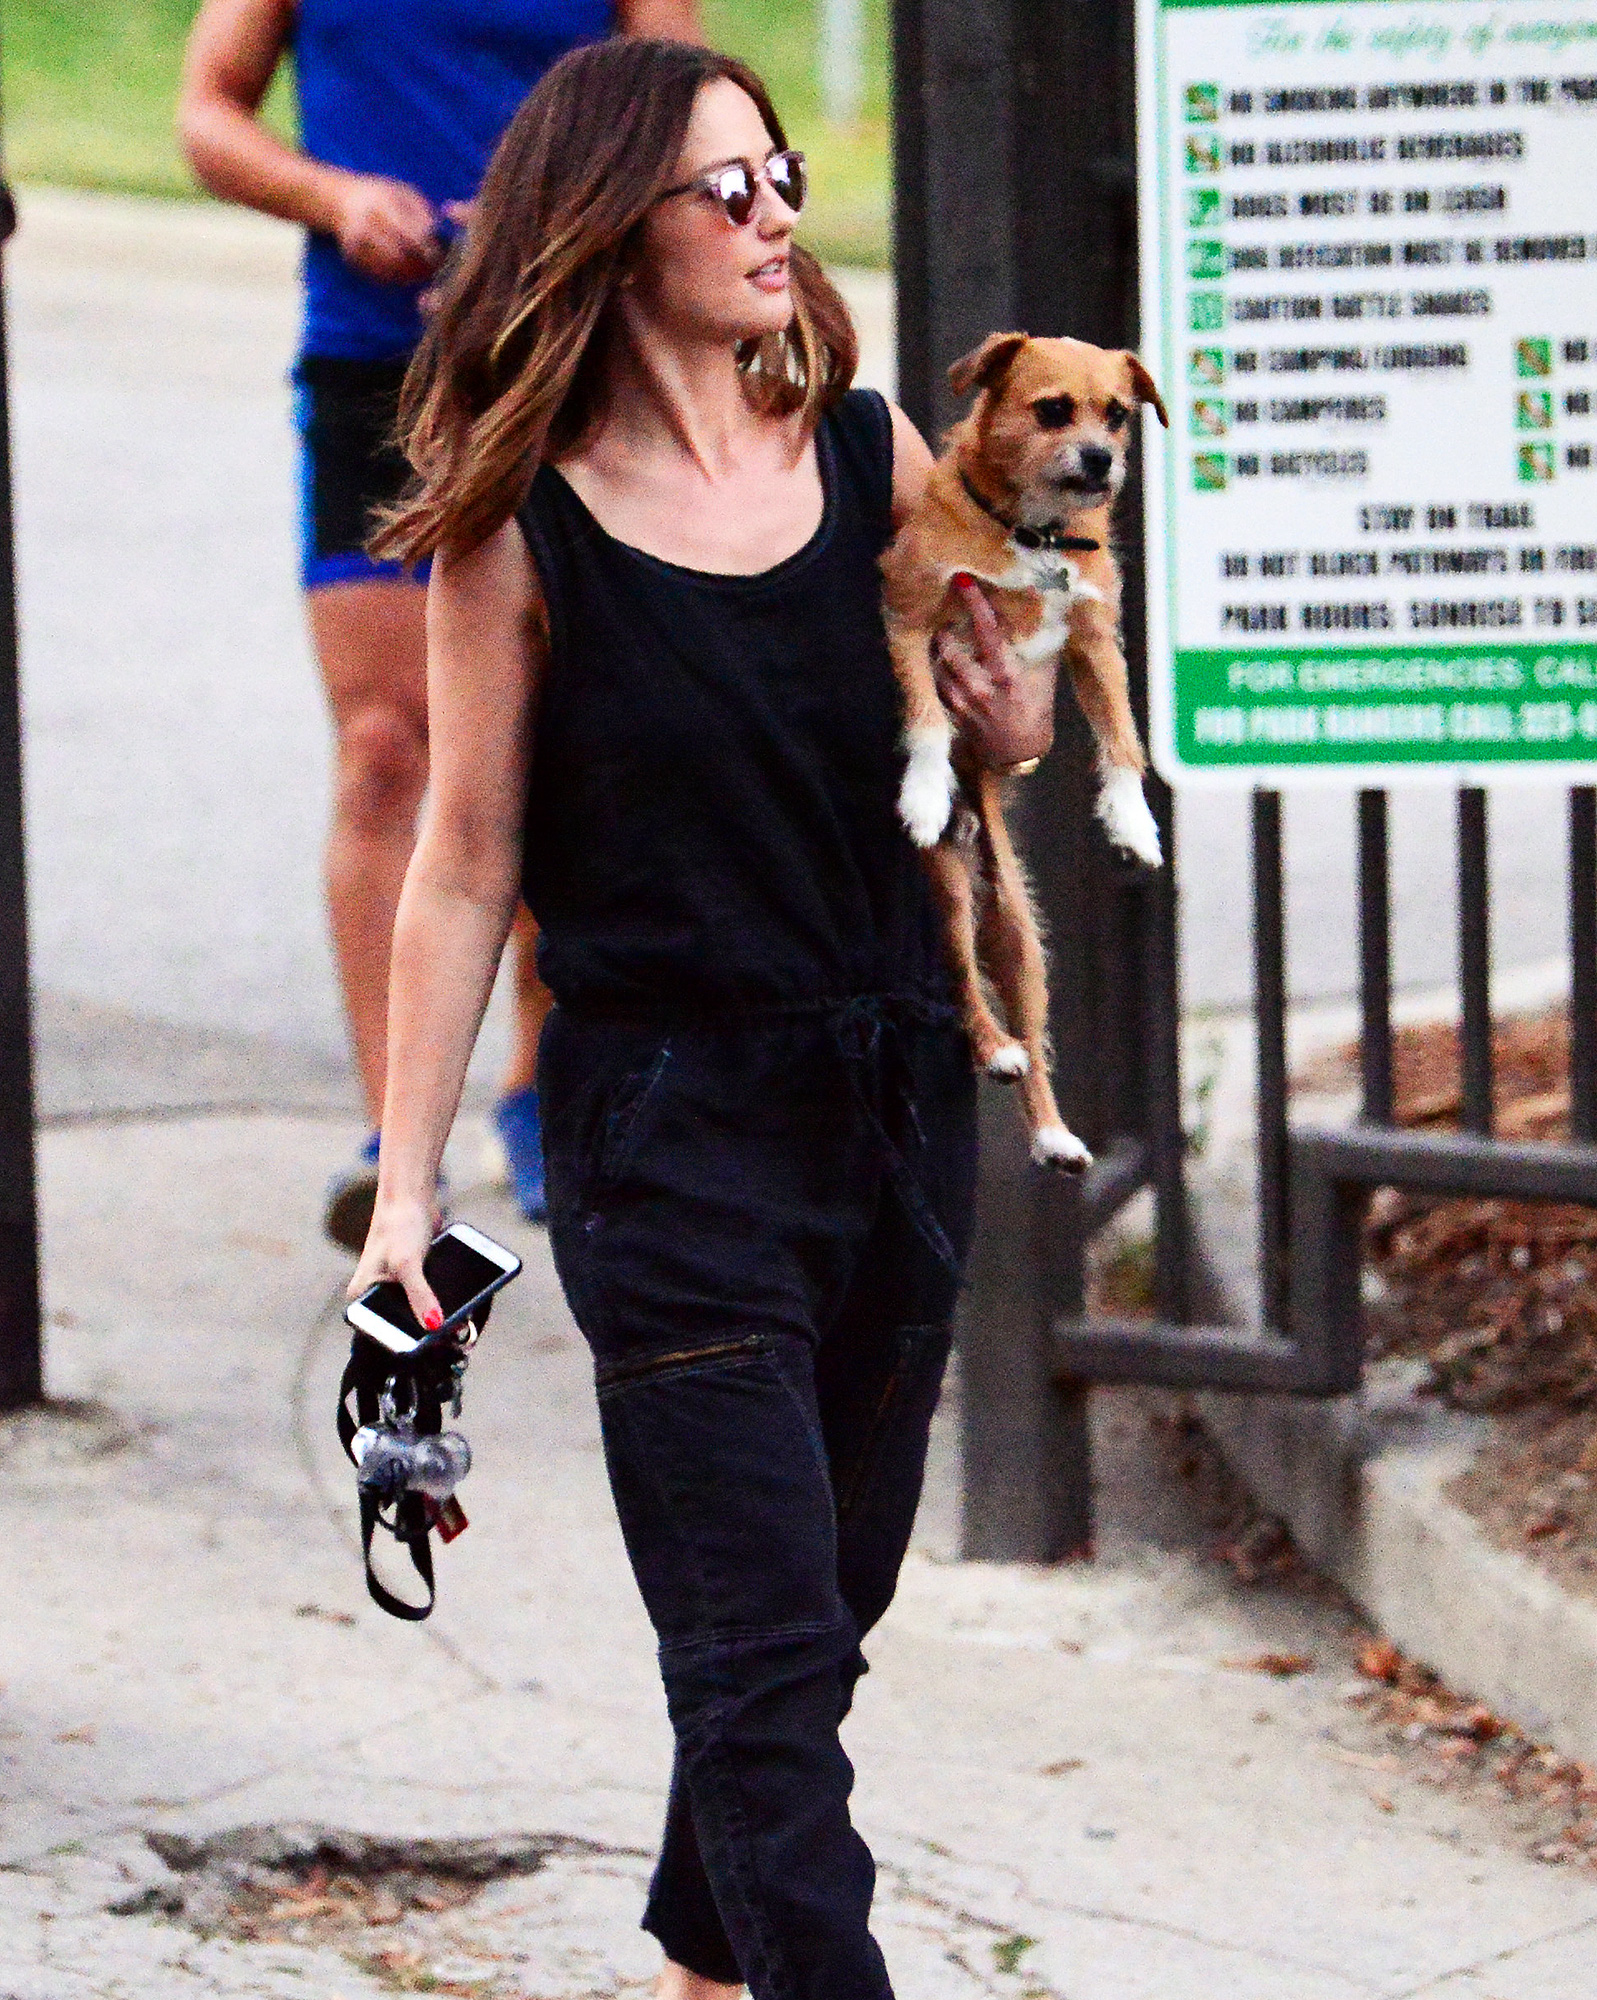 EXCLUSIVE: Minka Kelly takes her dogs to the park after going public with her new relationship!